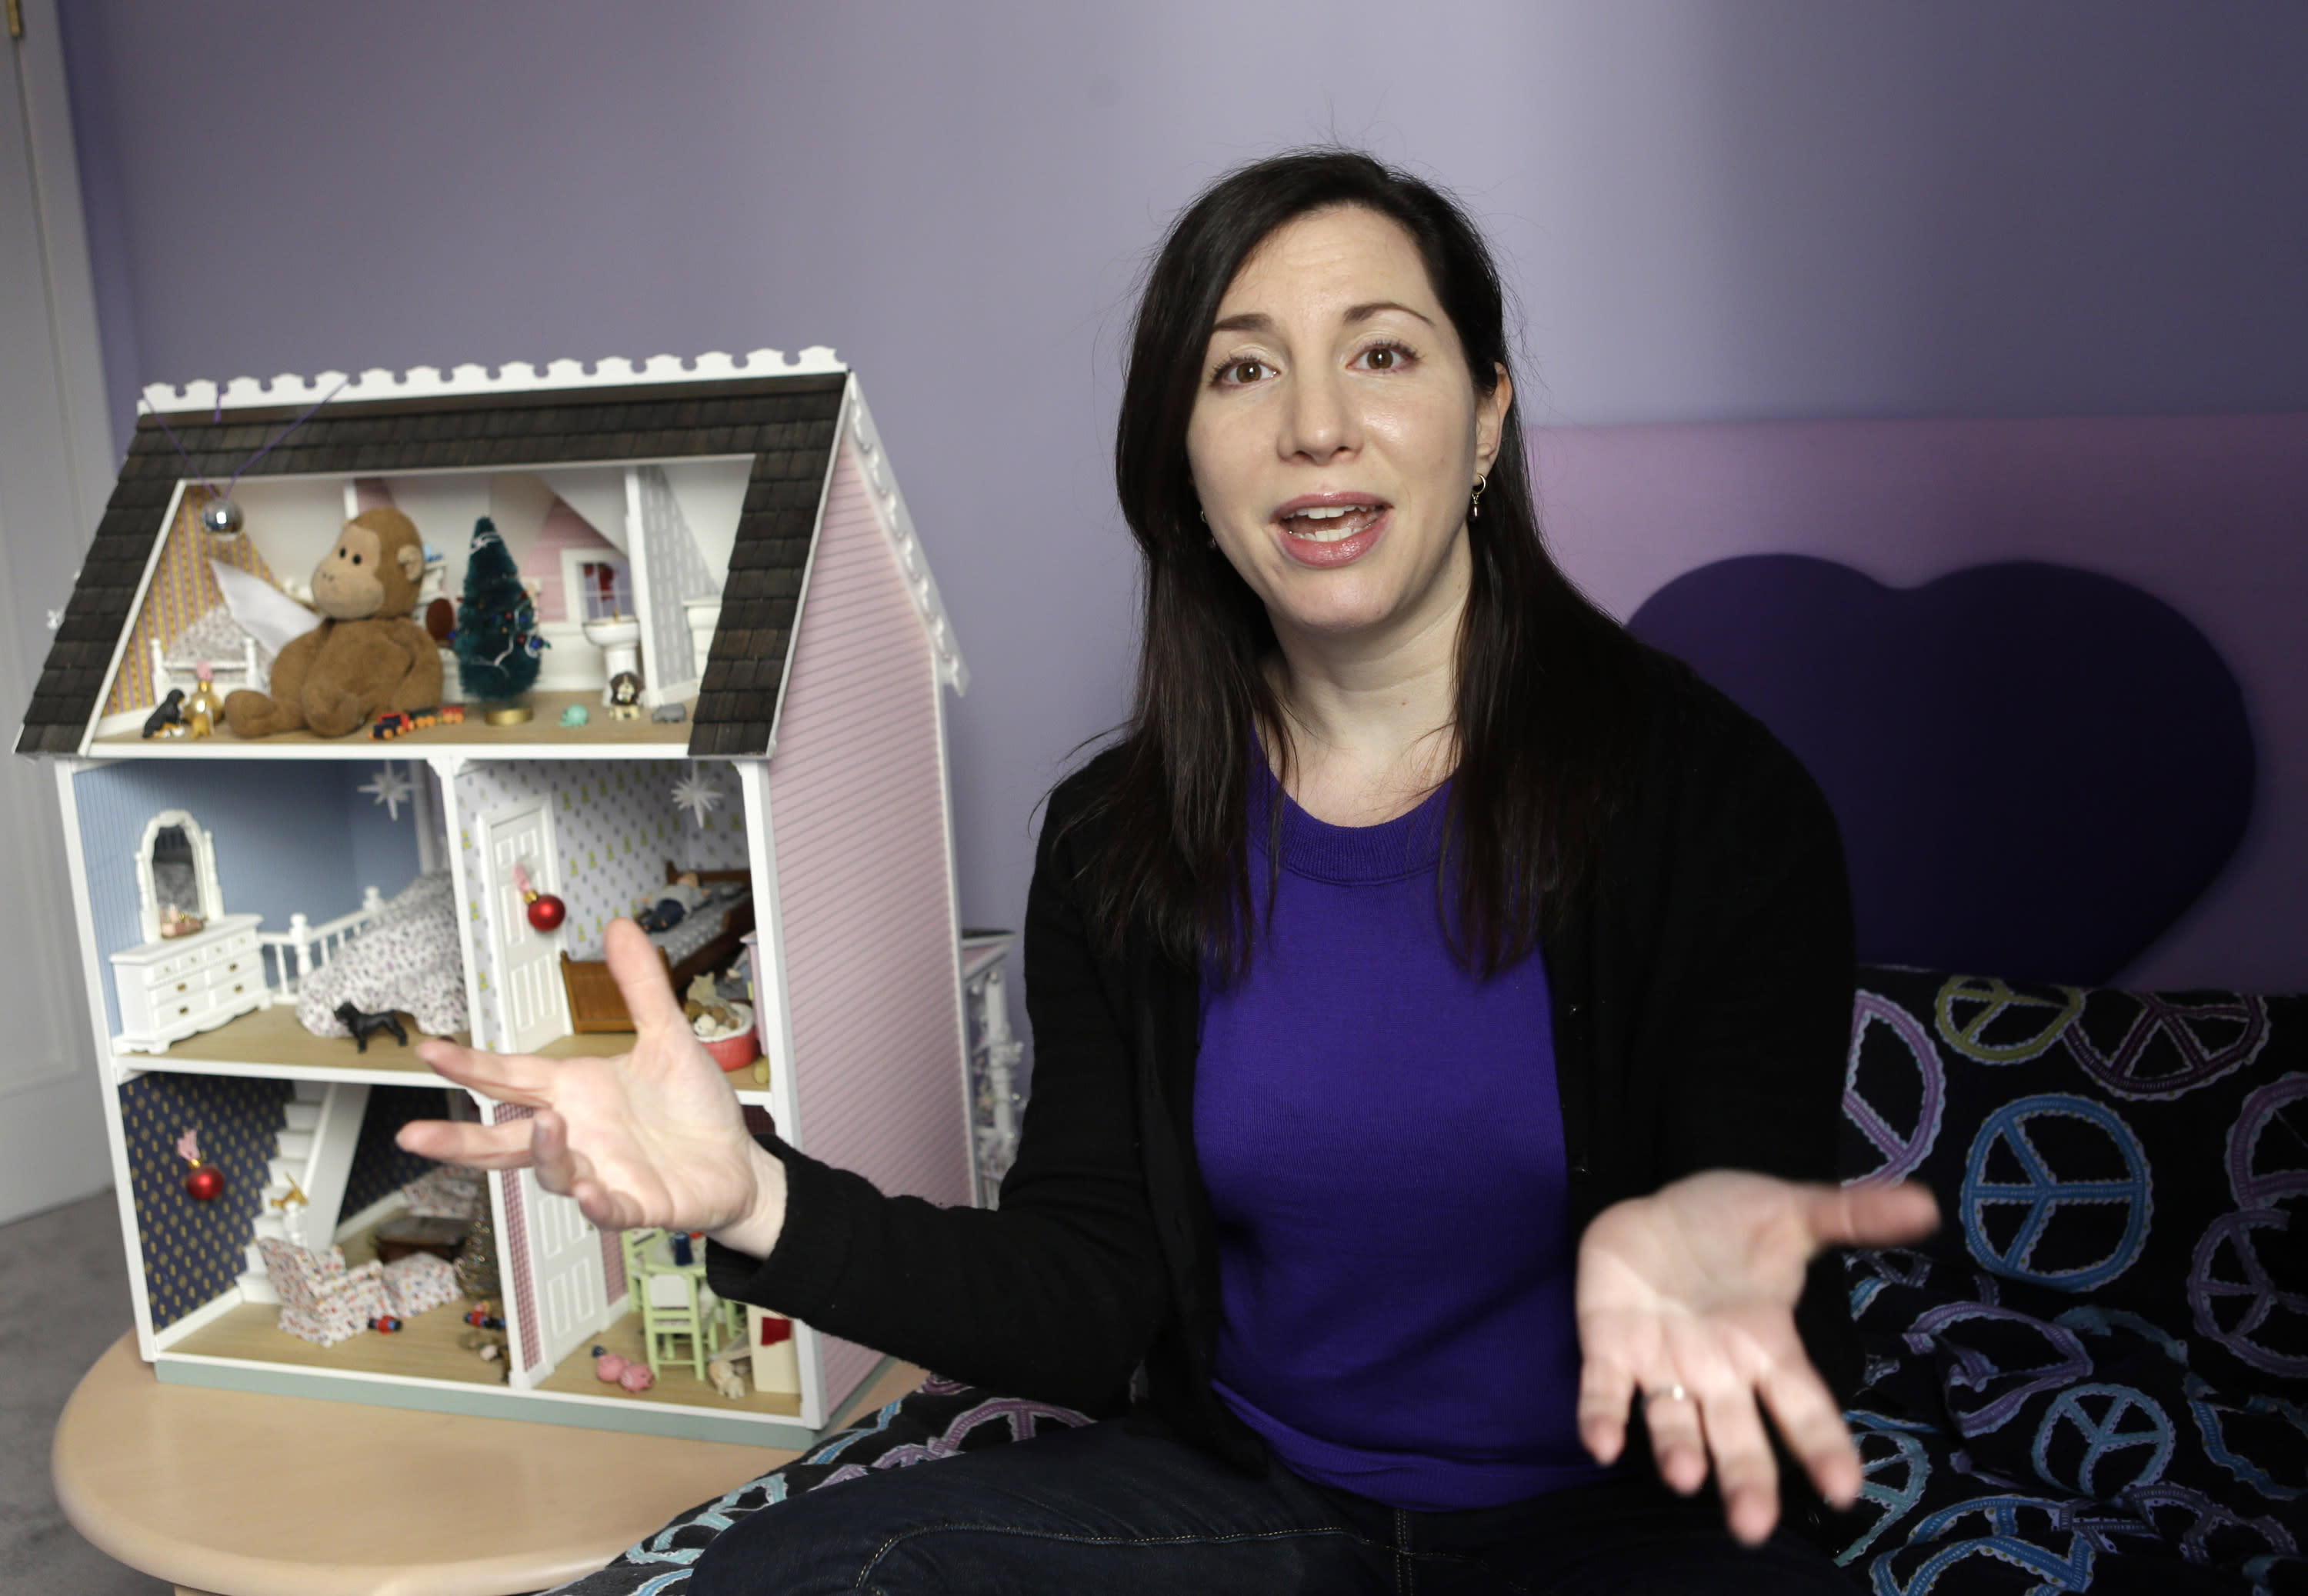 In this March 4, 2013 photo, Rebecca Levey, mother of 10-year old twin daughters, poses for a photograph in the girls' bedroom in New York. Levey, who also runs a tween video review site called KidzVuz.com and blogs about technology and educations issues, says, ìWhat sex education used to be_ it's now the 'technology talk' we have to have with our kids.î She explains that children need to understand the pitfalls of carelessly sharing personal information online. (AP Photo/Kathy Willens)